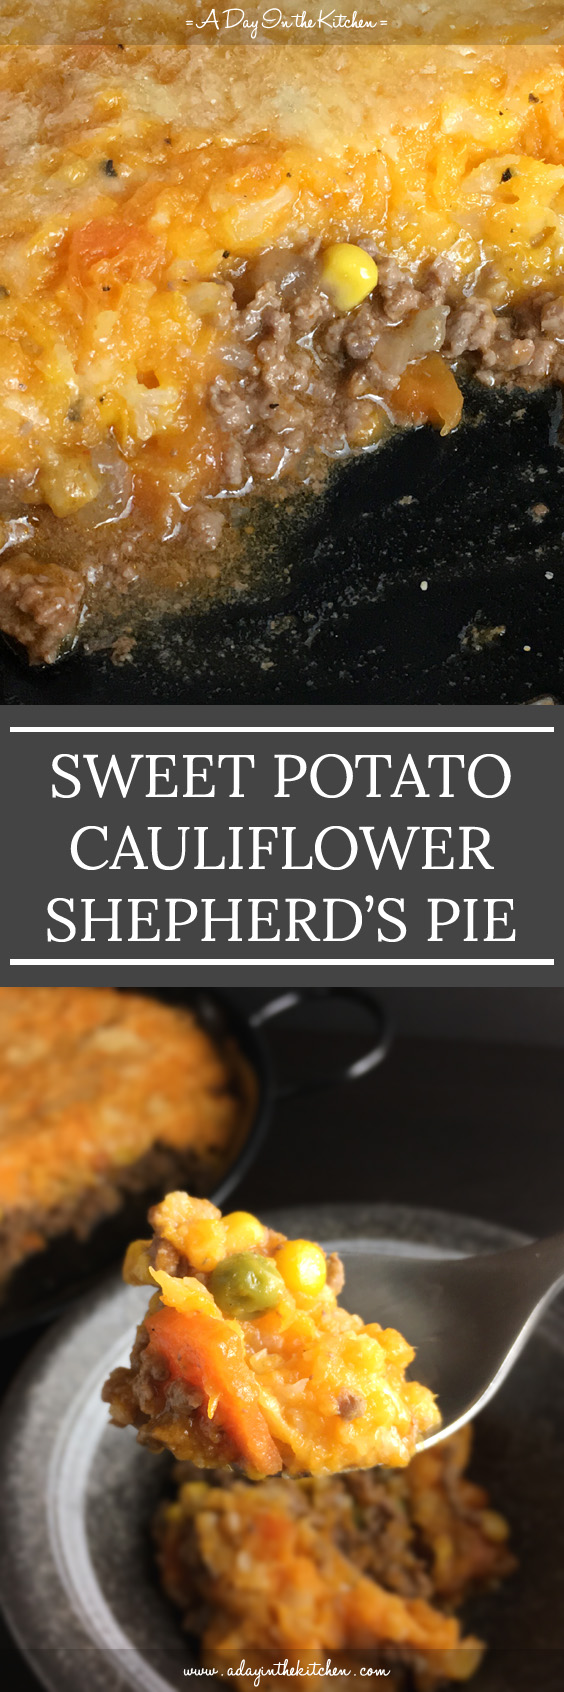 With the perfect flavor combination of sweet and savory, this Sweet Potato Cauliflower Shepherd's Pie is a winner of a meal. This twist on the traditional shepherd's pie is lighter and healthier, and is great one-dish meal. #shepherdspie #sweetpotatoshepherdspie #glutenfree #cauliflower #sweetpotatoes